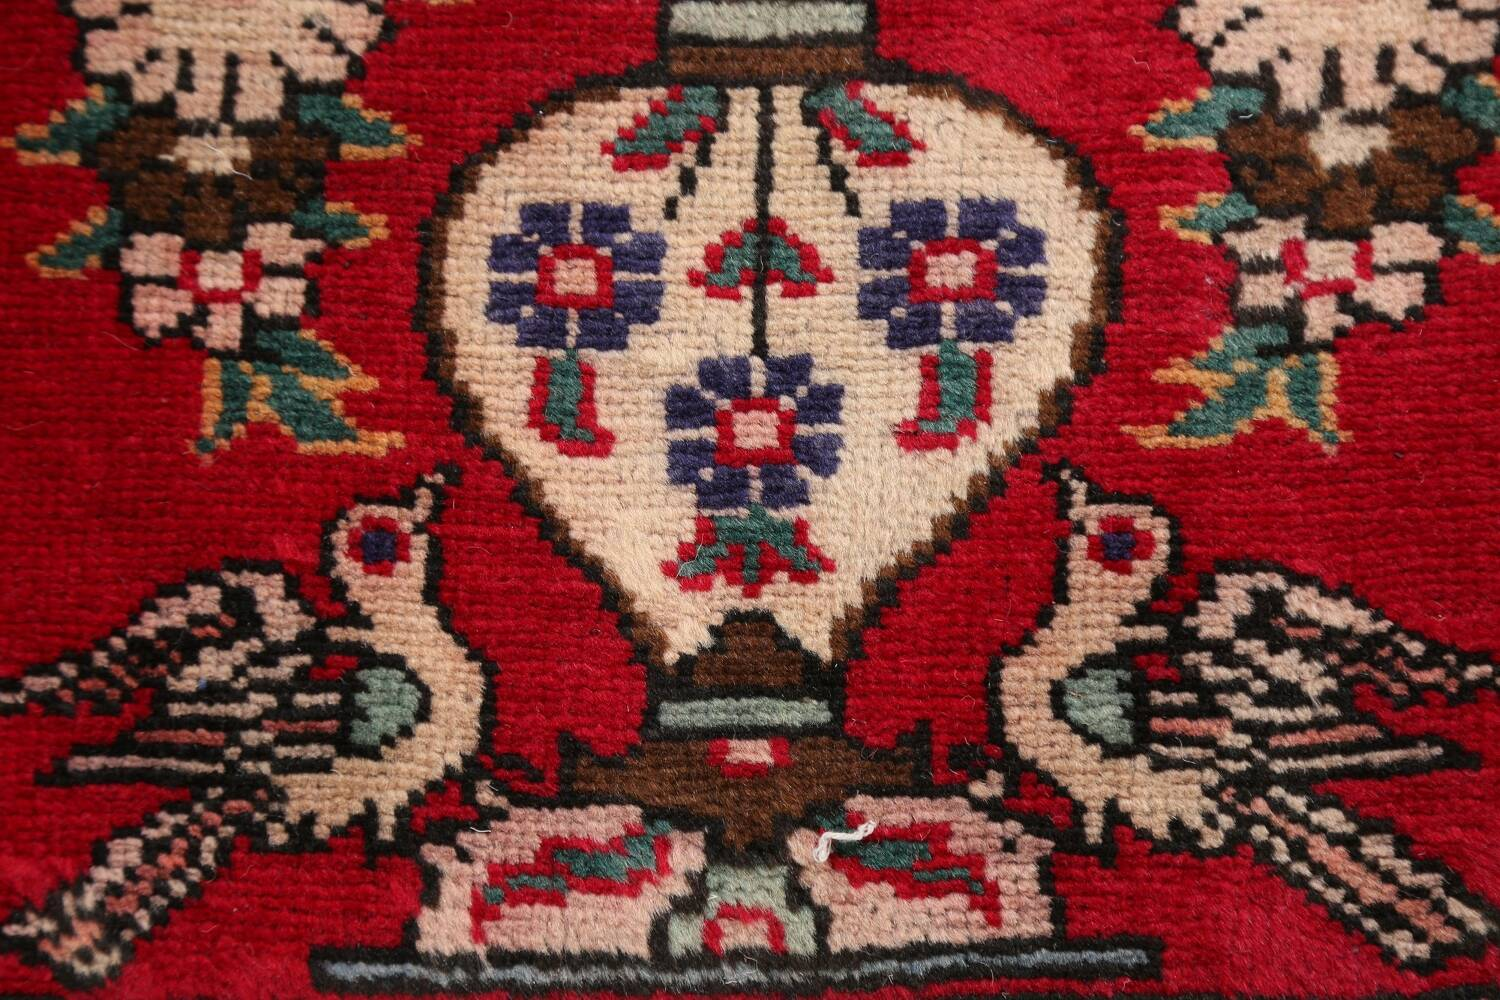 Animal Pictorial Red Tabriz Persian Area Rug 2x2 image 8